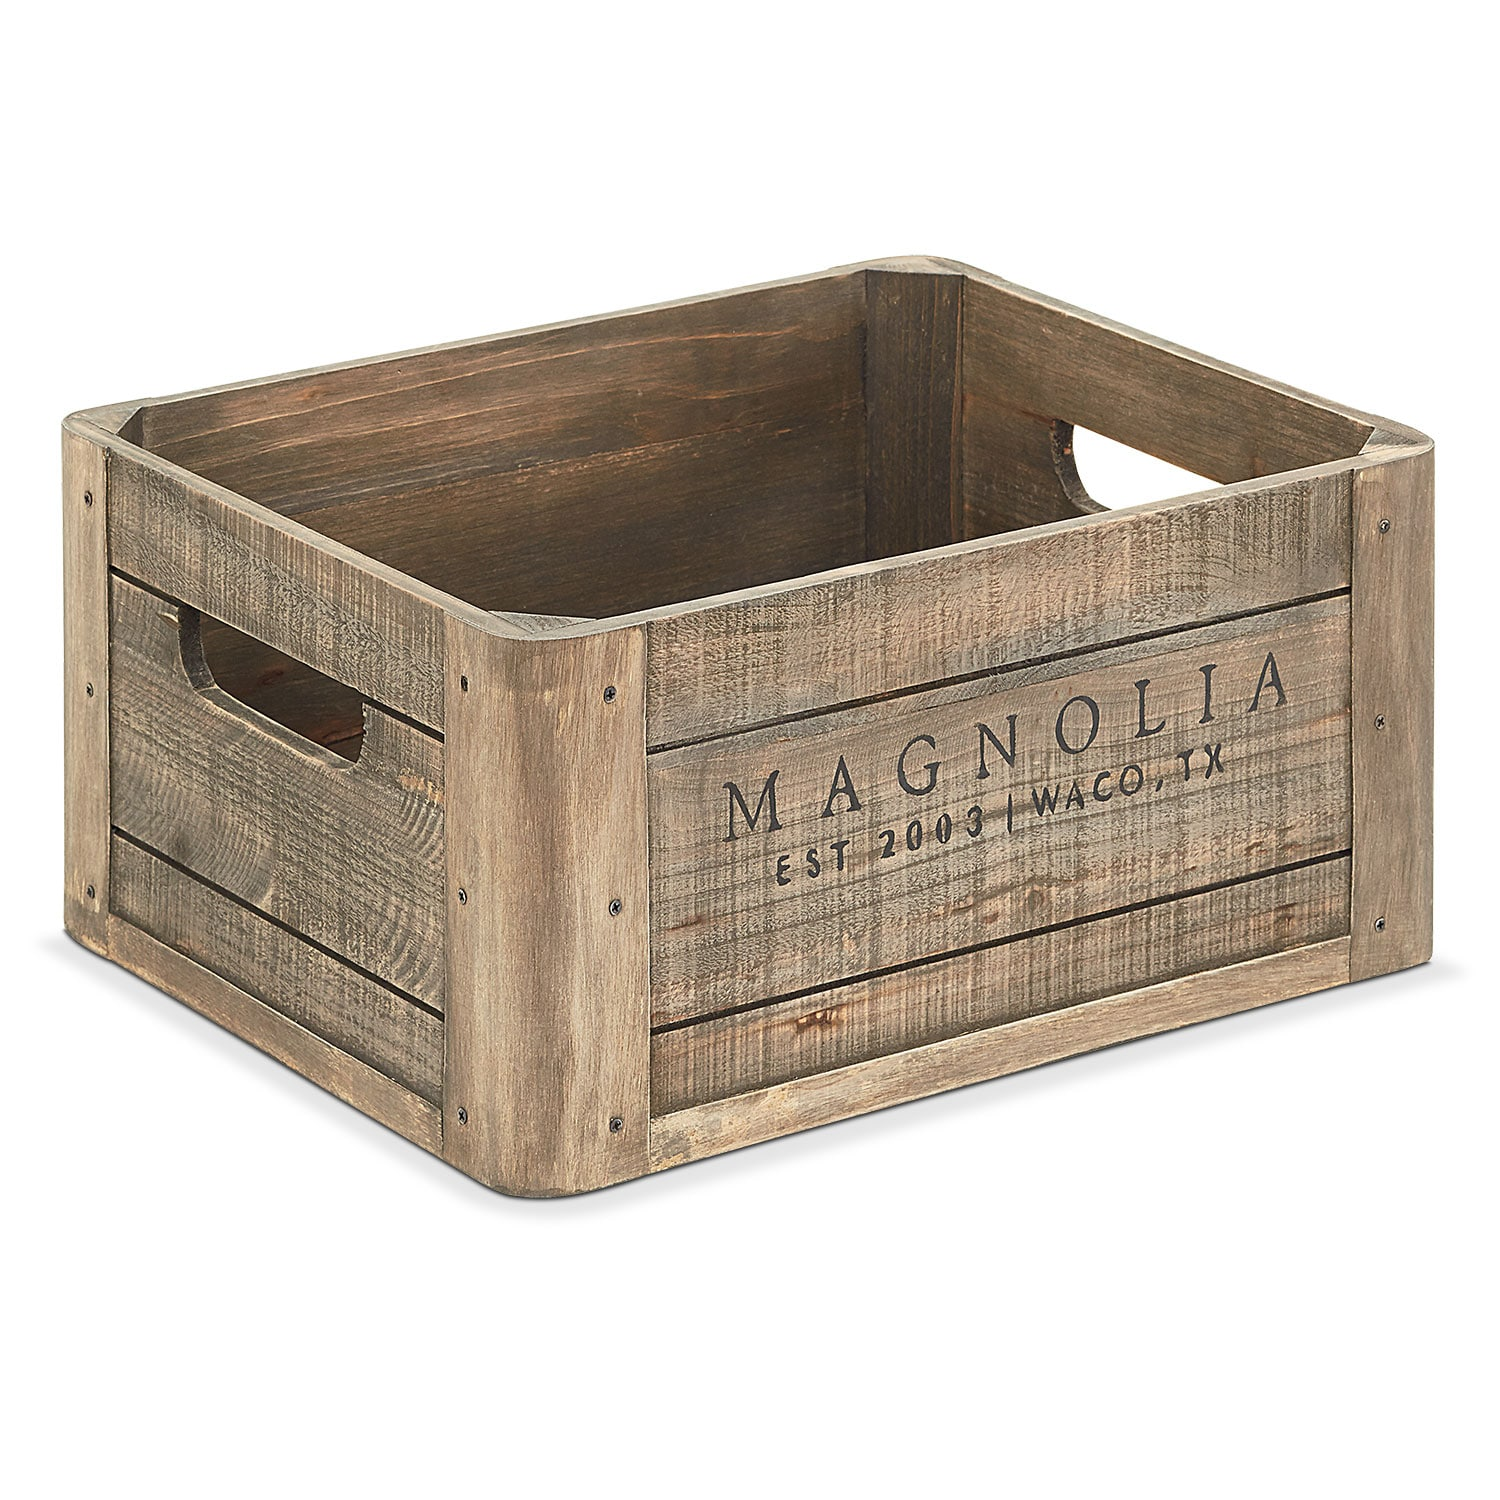 Home Accessories - Wood Crate with Magnolia Logo